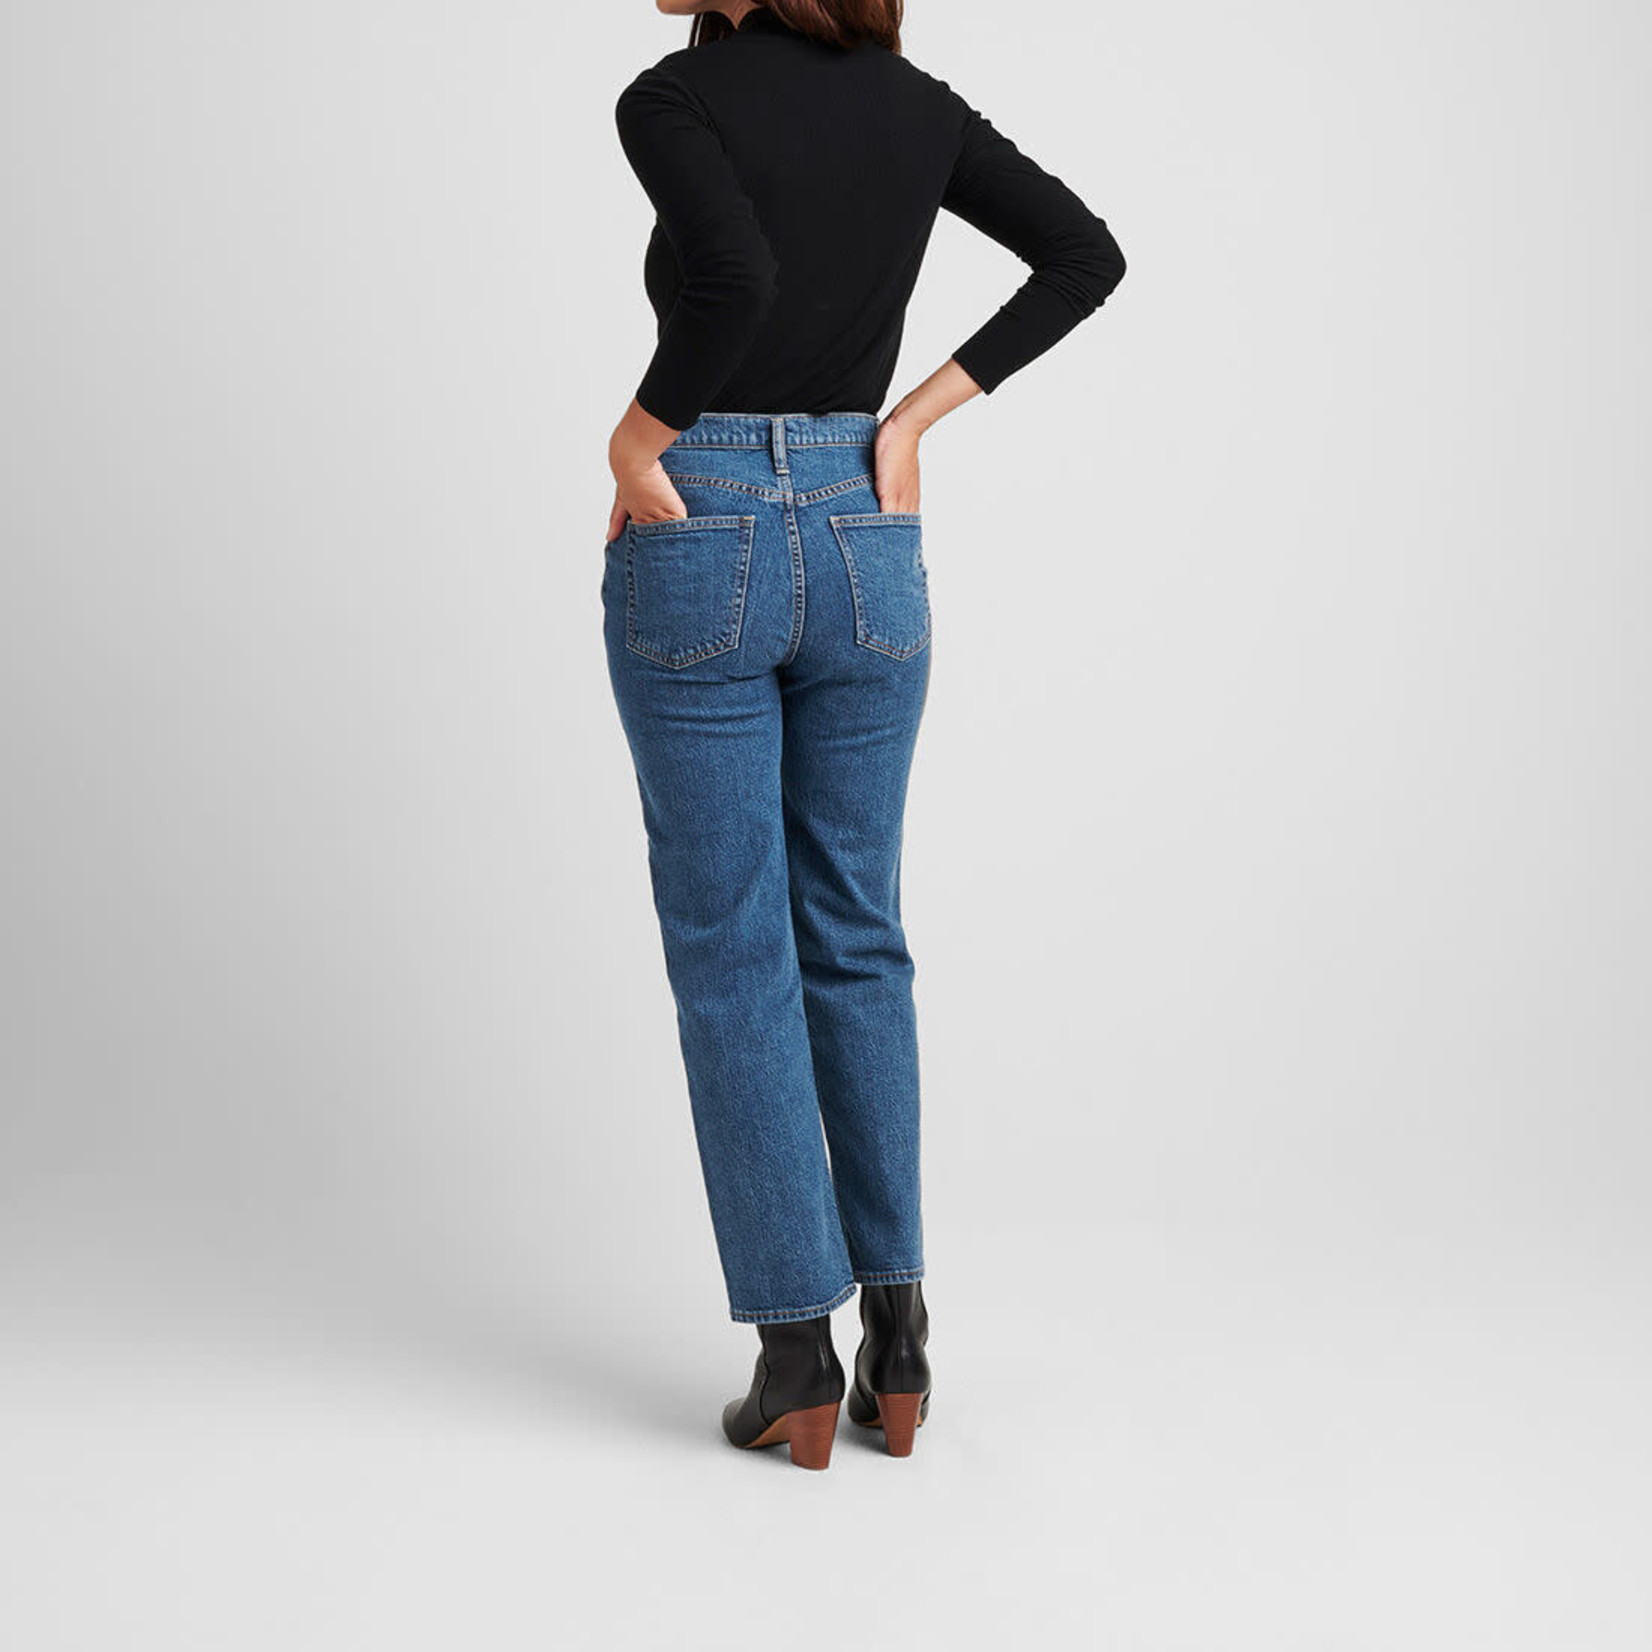 Silver Jeans Co. Highly Desirable Straight Leg